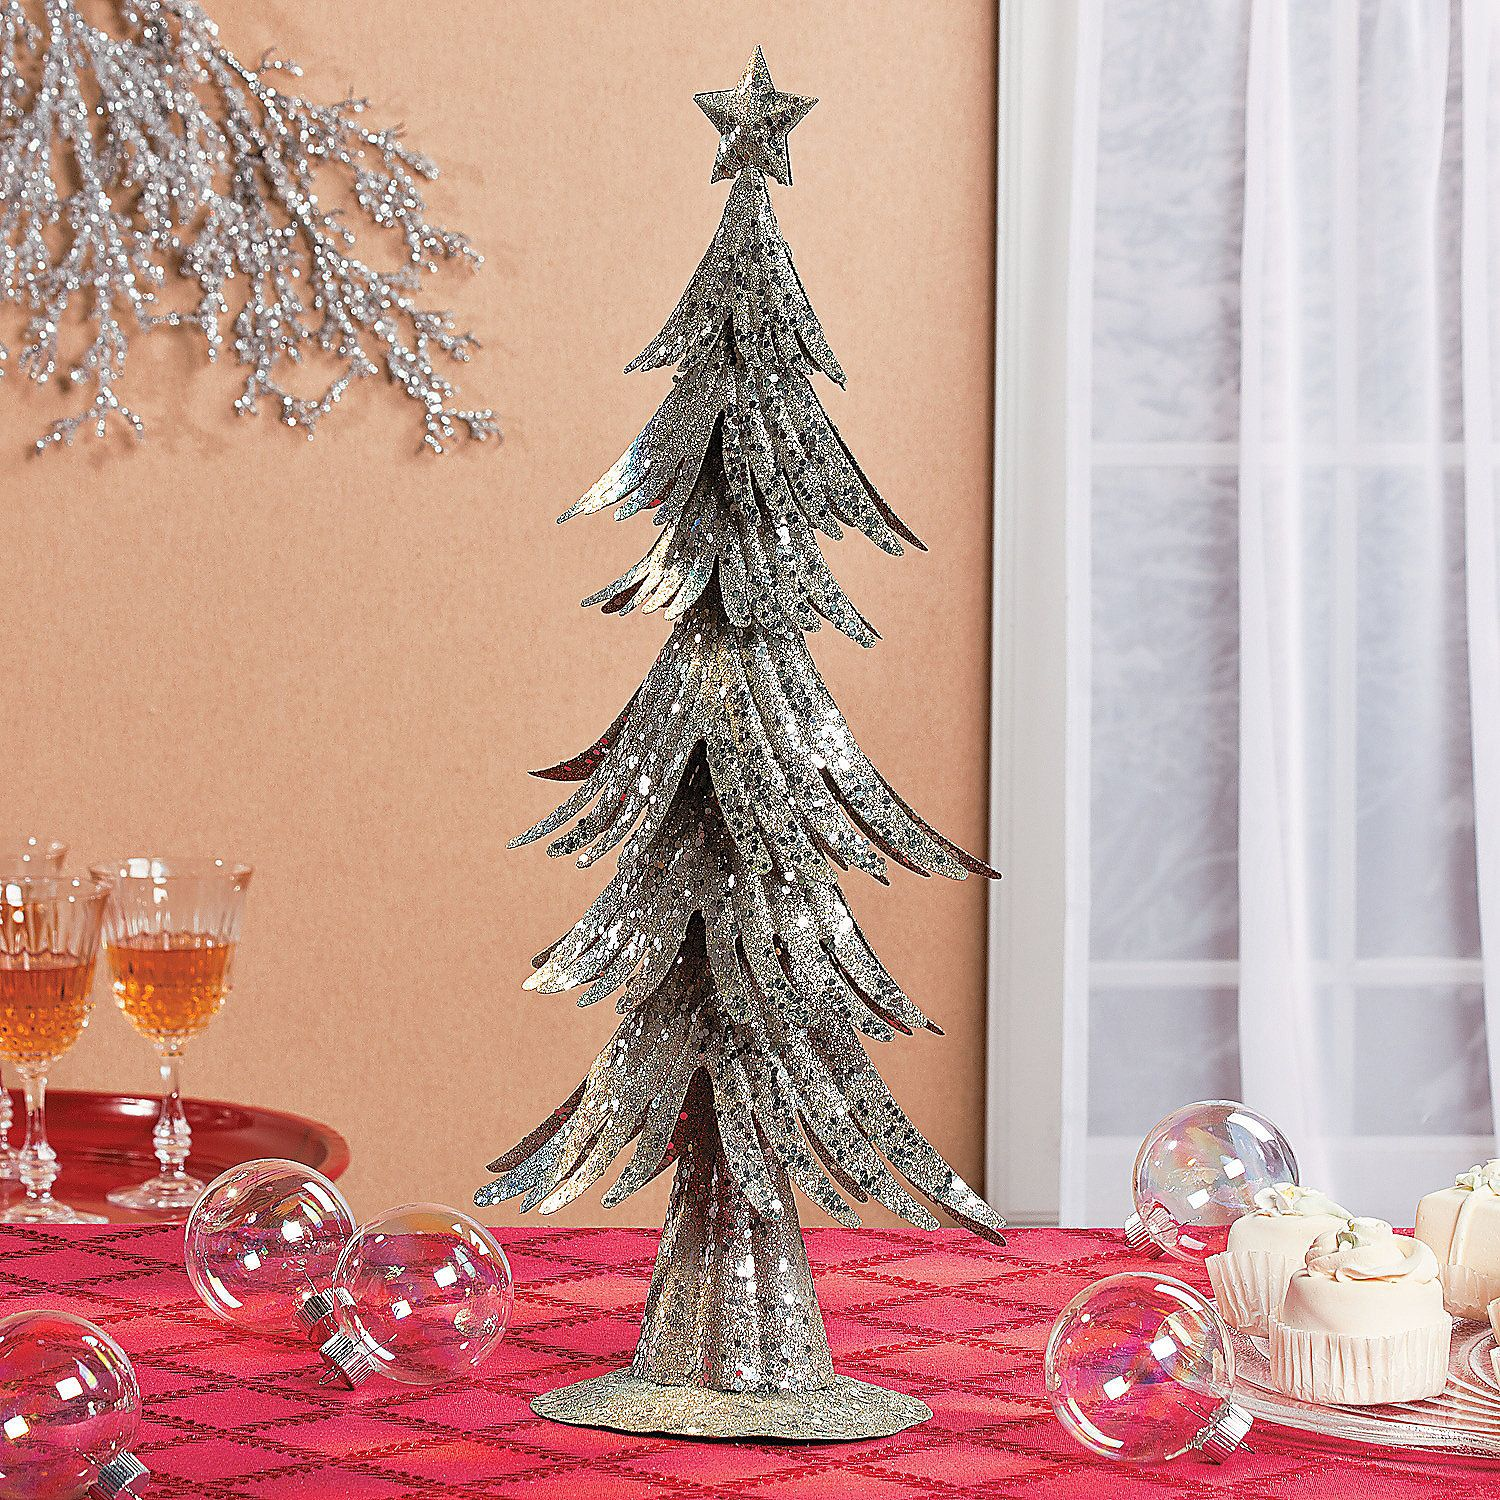 Charming Home Decor, Accents, Holiday Decorations U0026 Accessories   Terryu0027s Village